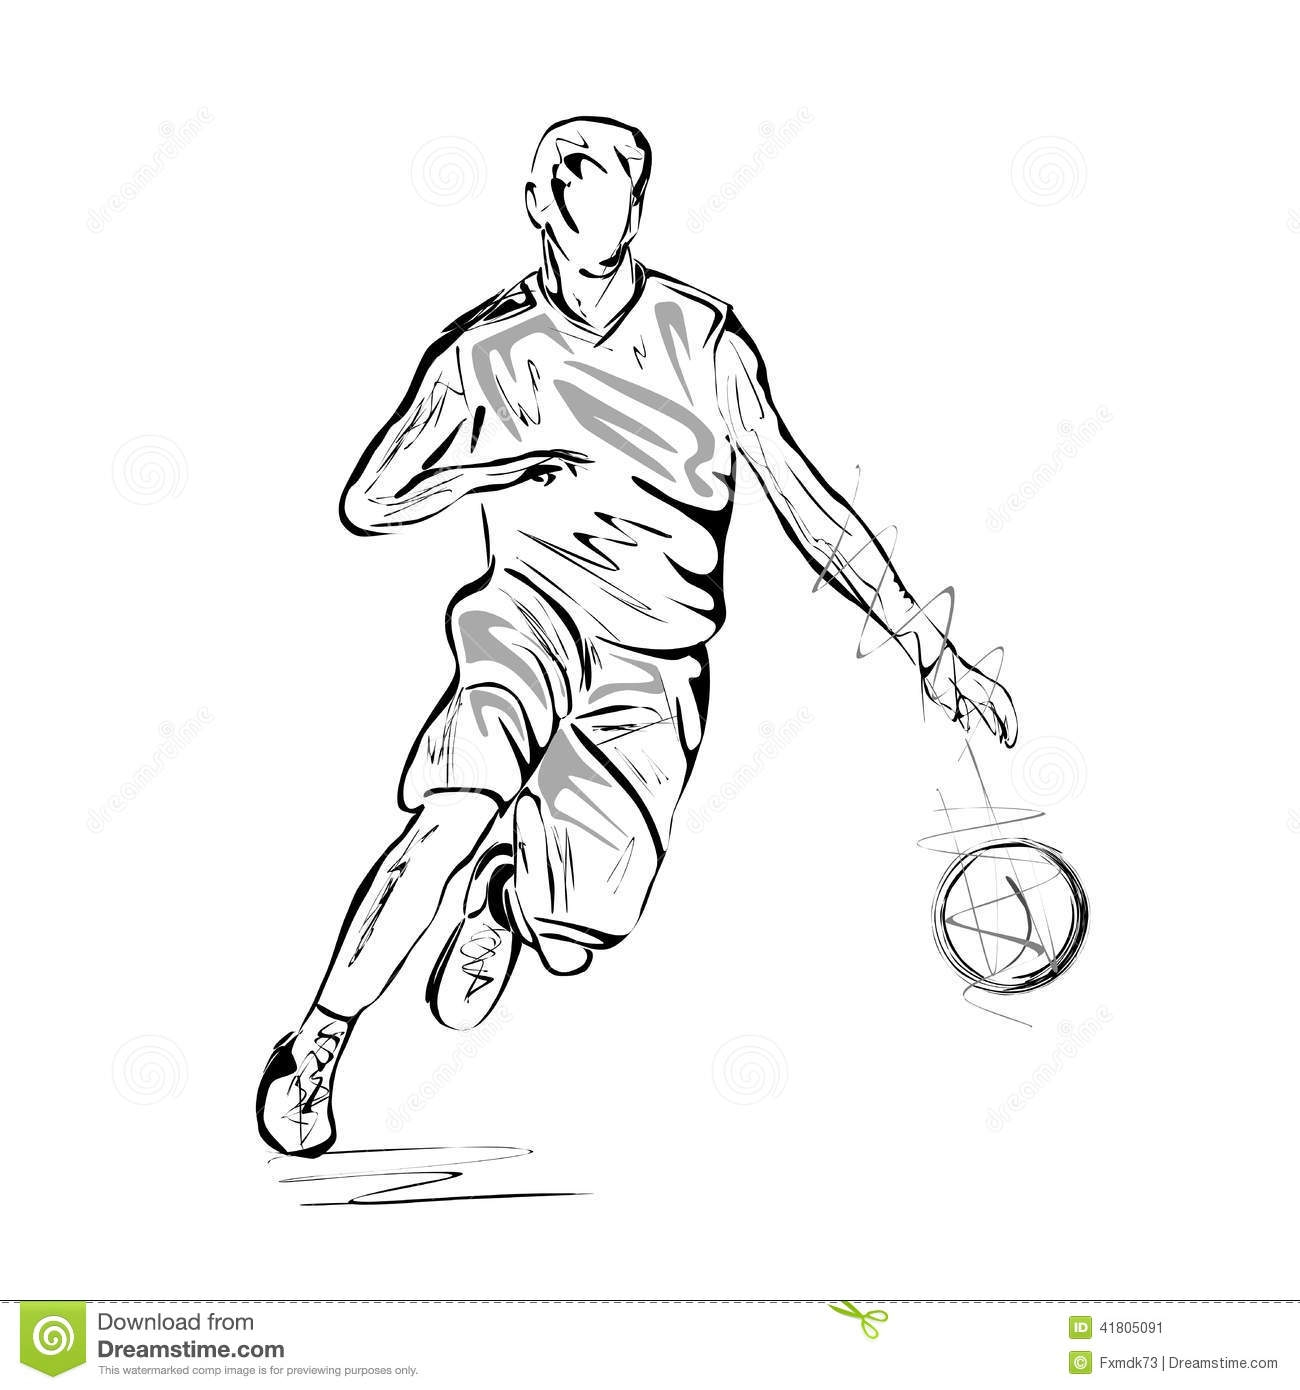 eagle coloring pages - stock illustration basketball player vector illustration sketch white background image